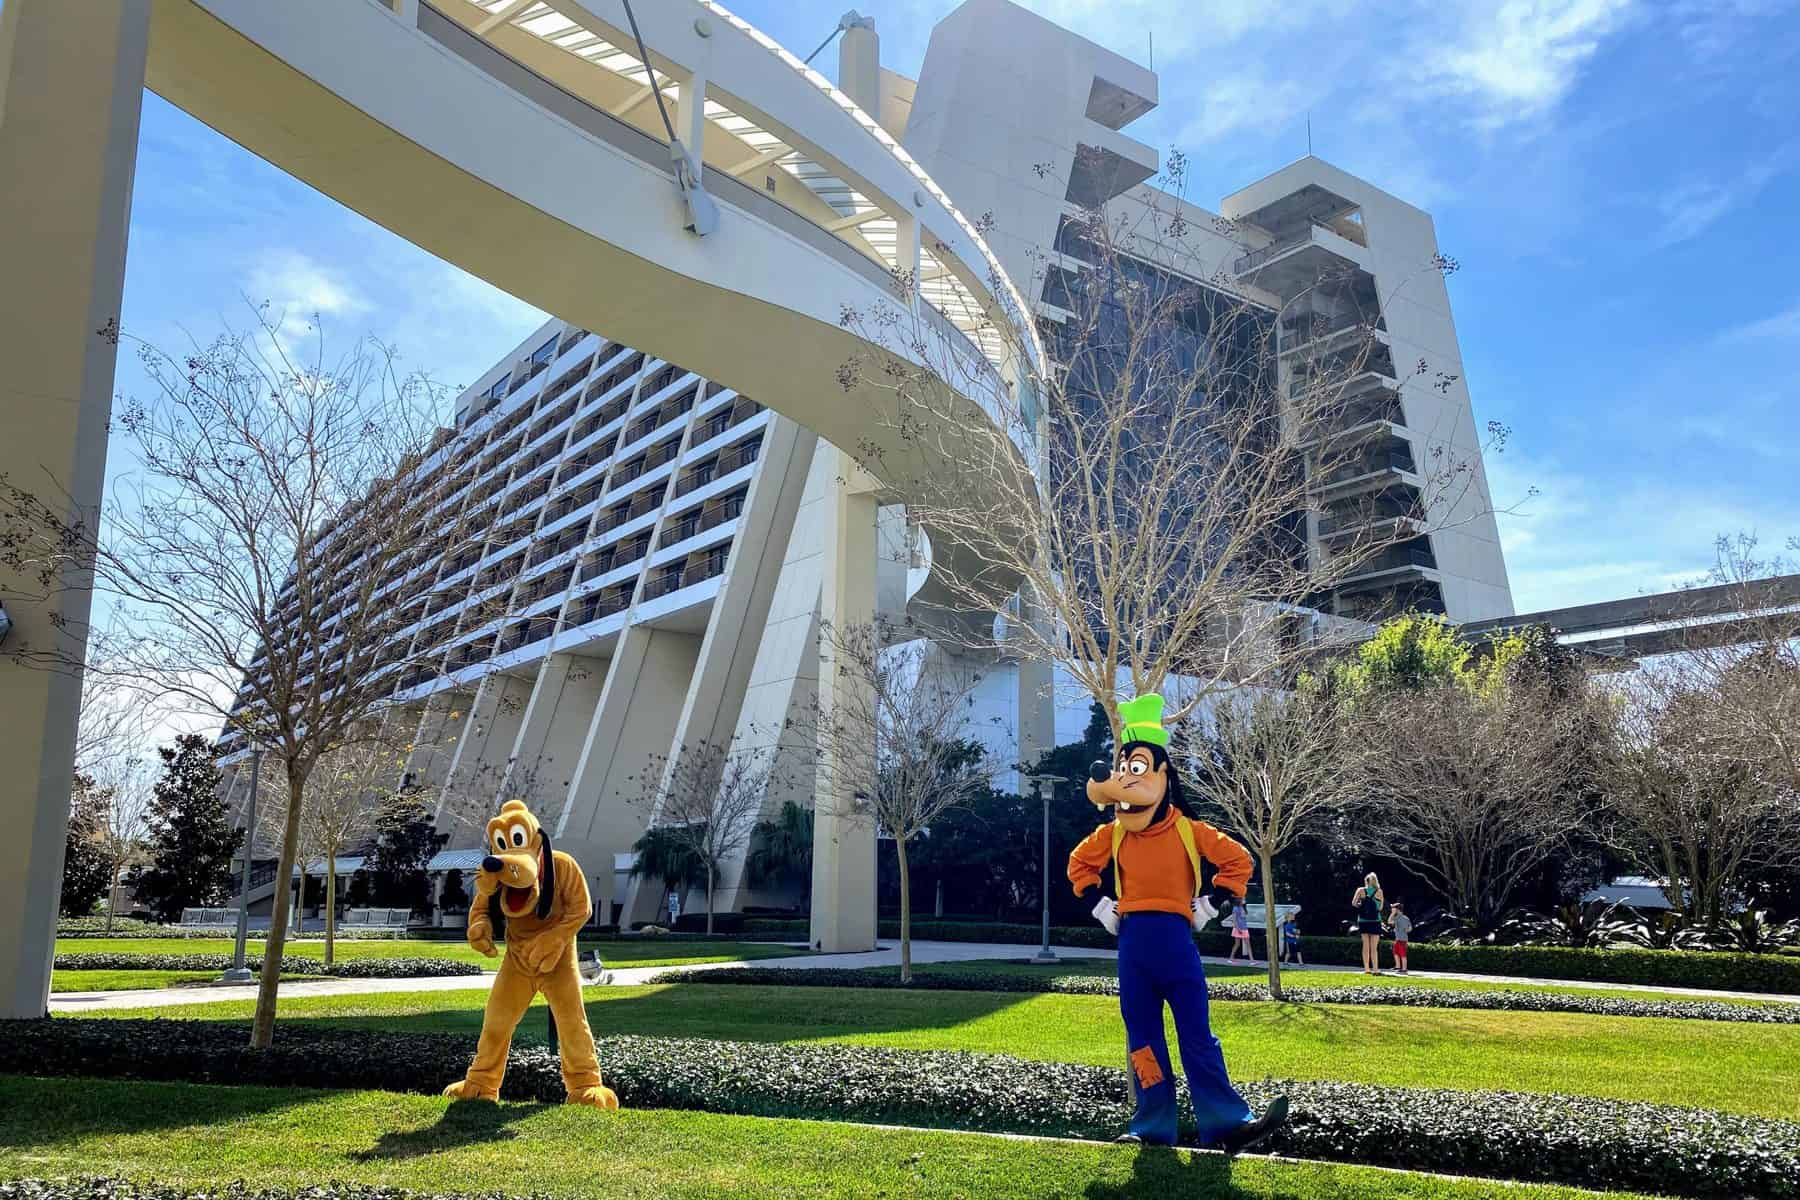 Goofy and Pluto on the lawn of the Contemporary